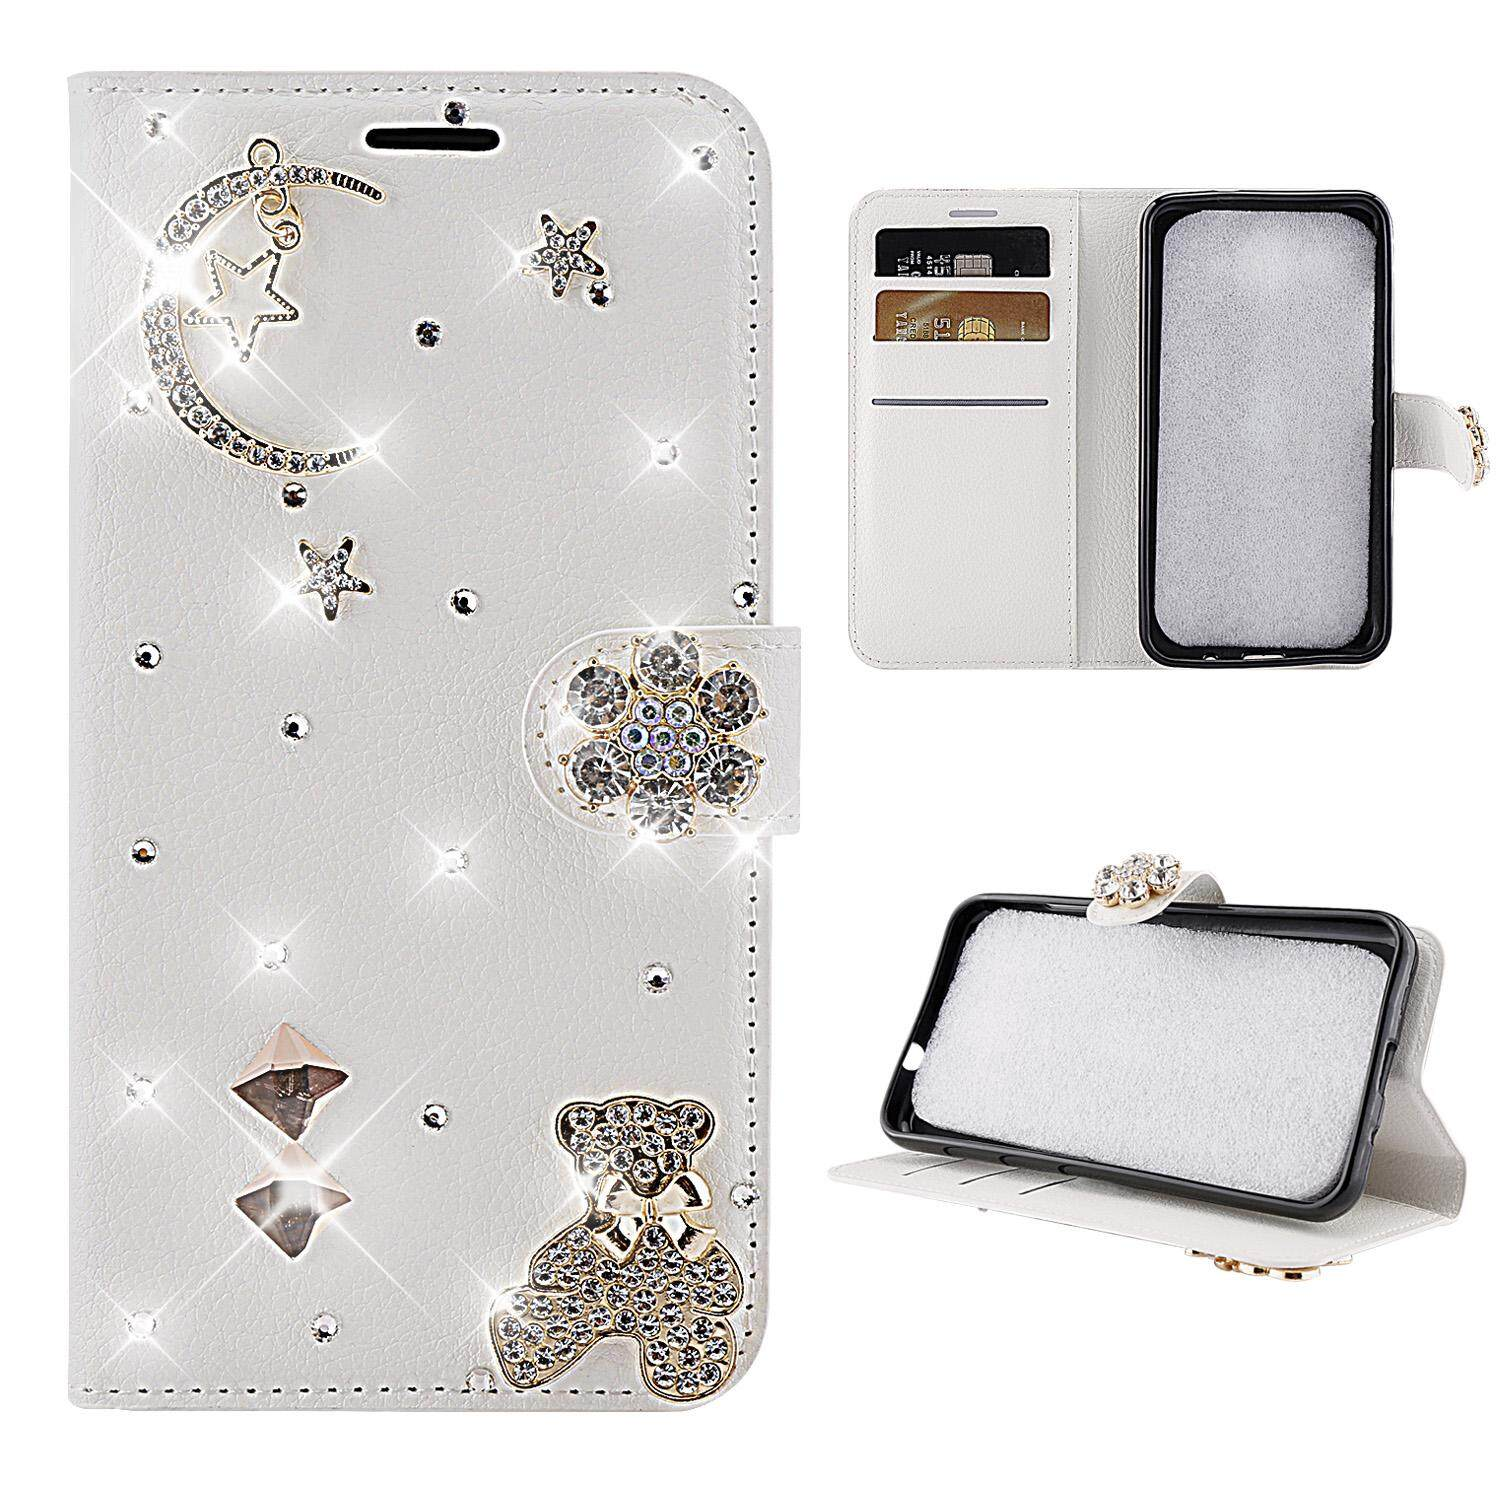 Moonmini For HTC U11 Life 3D Bling Diamond Rhinestones PU Leather Wallet Case Flip Stand Card Slots Cover with Magnetic Closure - intl